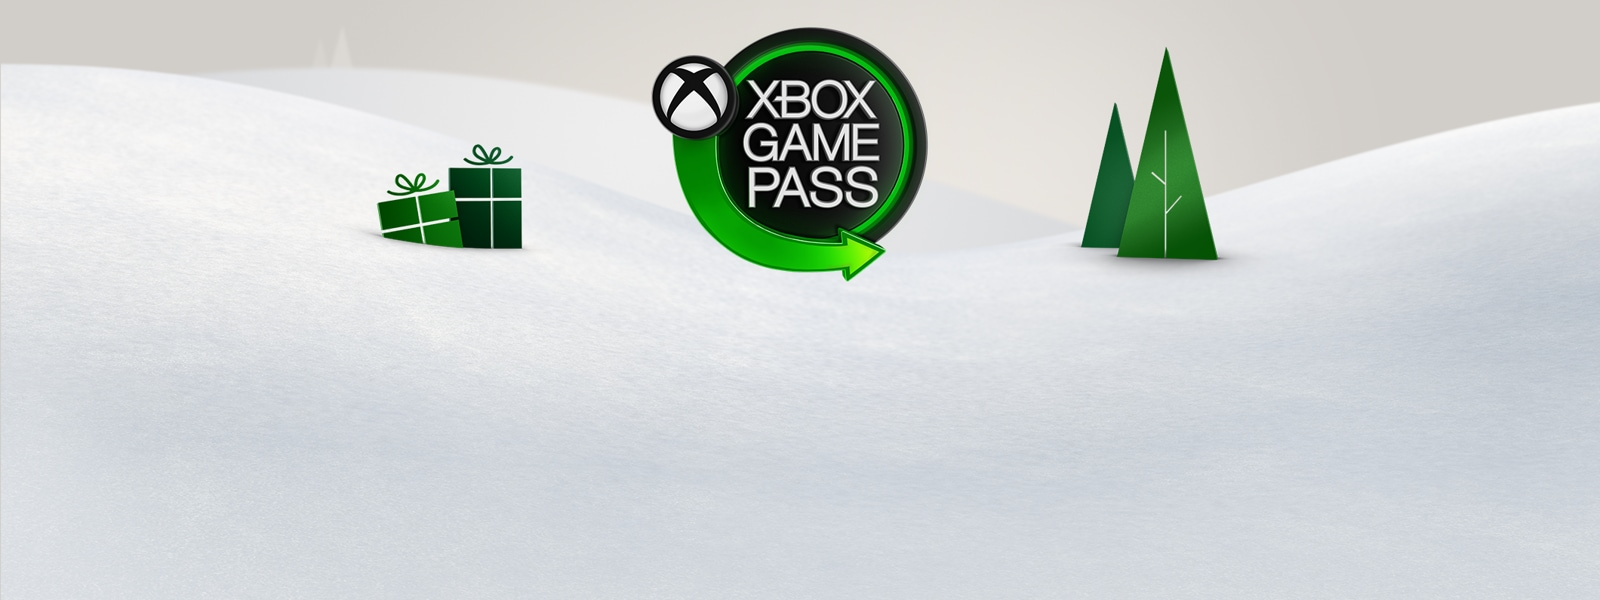 O logótipo do Xbox Game Pass